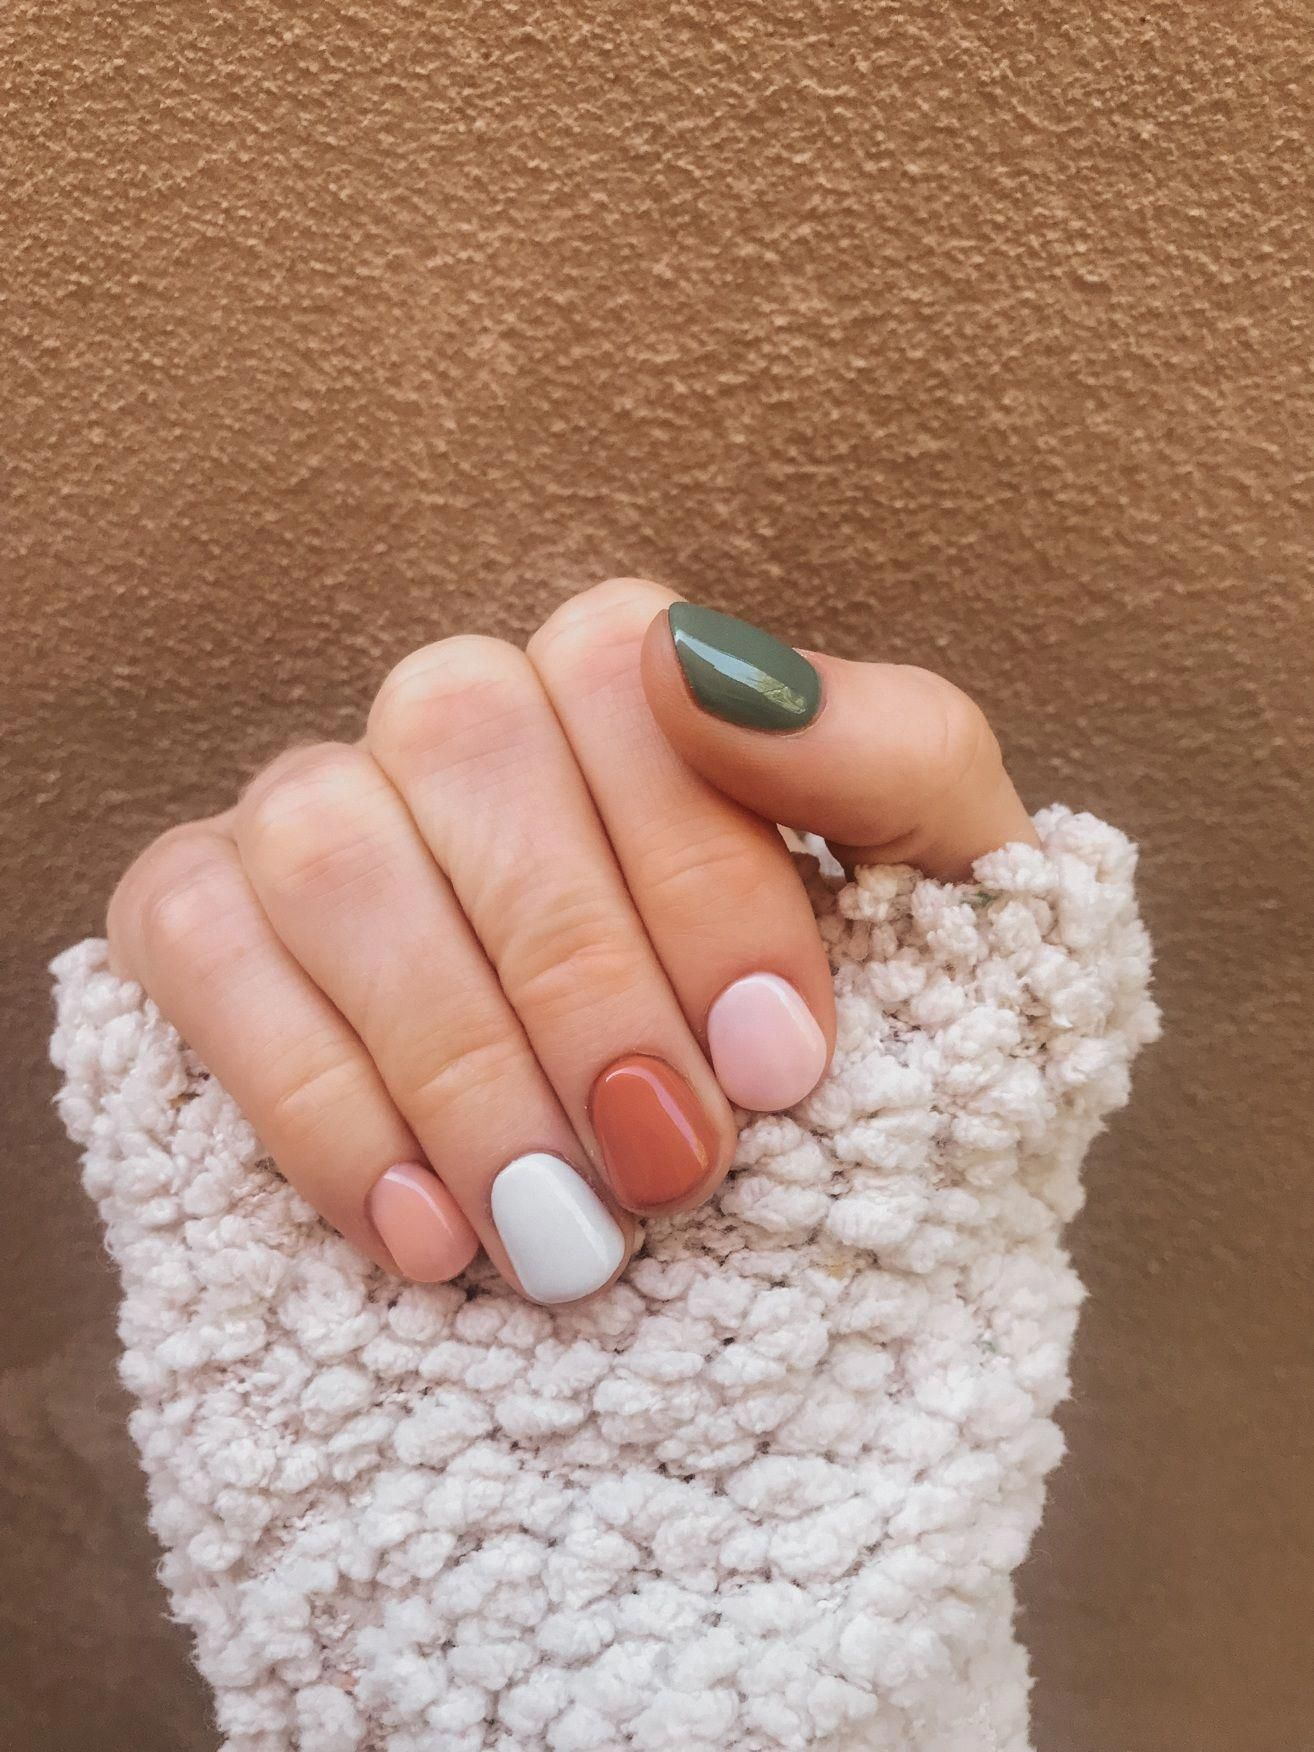 Fall nails roundup: cute manicure ideas to try this season | Mint Arrow #mintarrow #nails #nailsofinstagram #nailpolish #naildesigns #fallnails #beauty #fingernailart #nailideas #gelnails